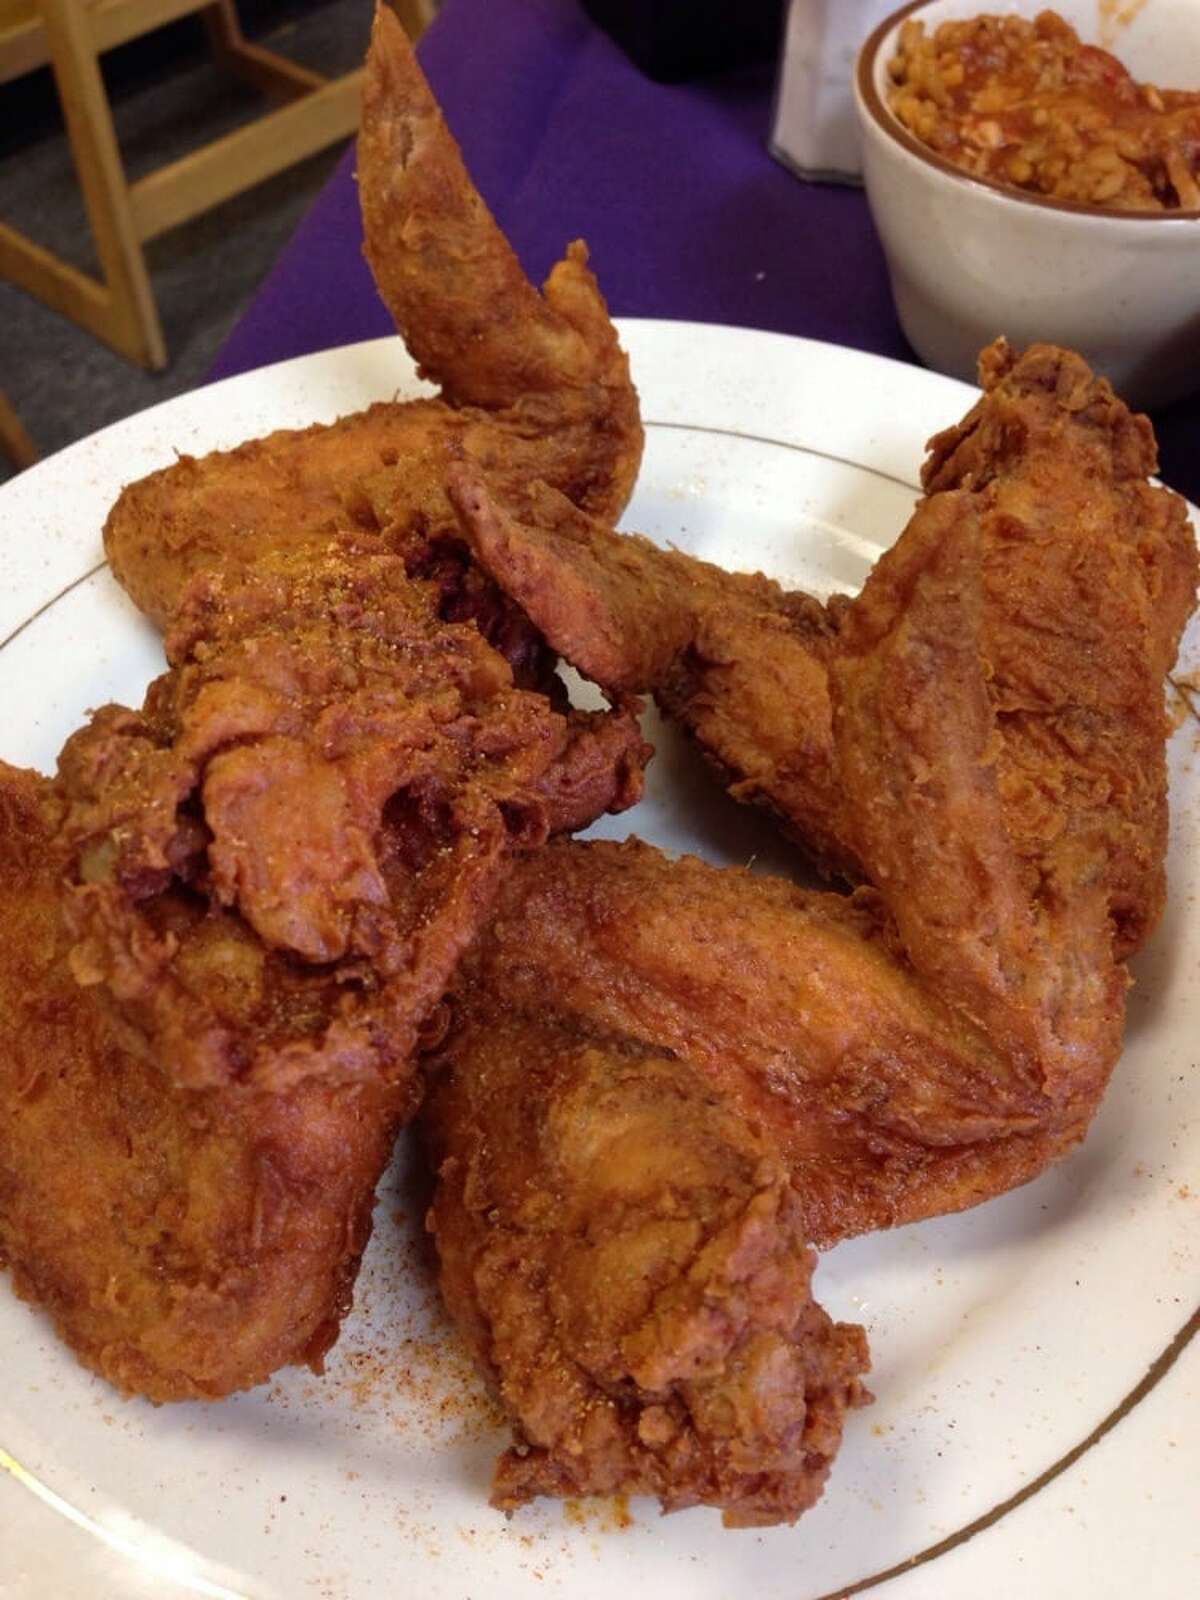 >>>See Houston's best fried chicken restaurants. Le' Pam's House of CreoleWhere: 1644 FM 1960 W, Ste AYelp Rating: 5 stars Photo: Laurel W./Yelp